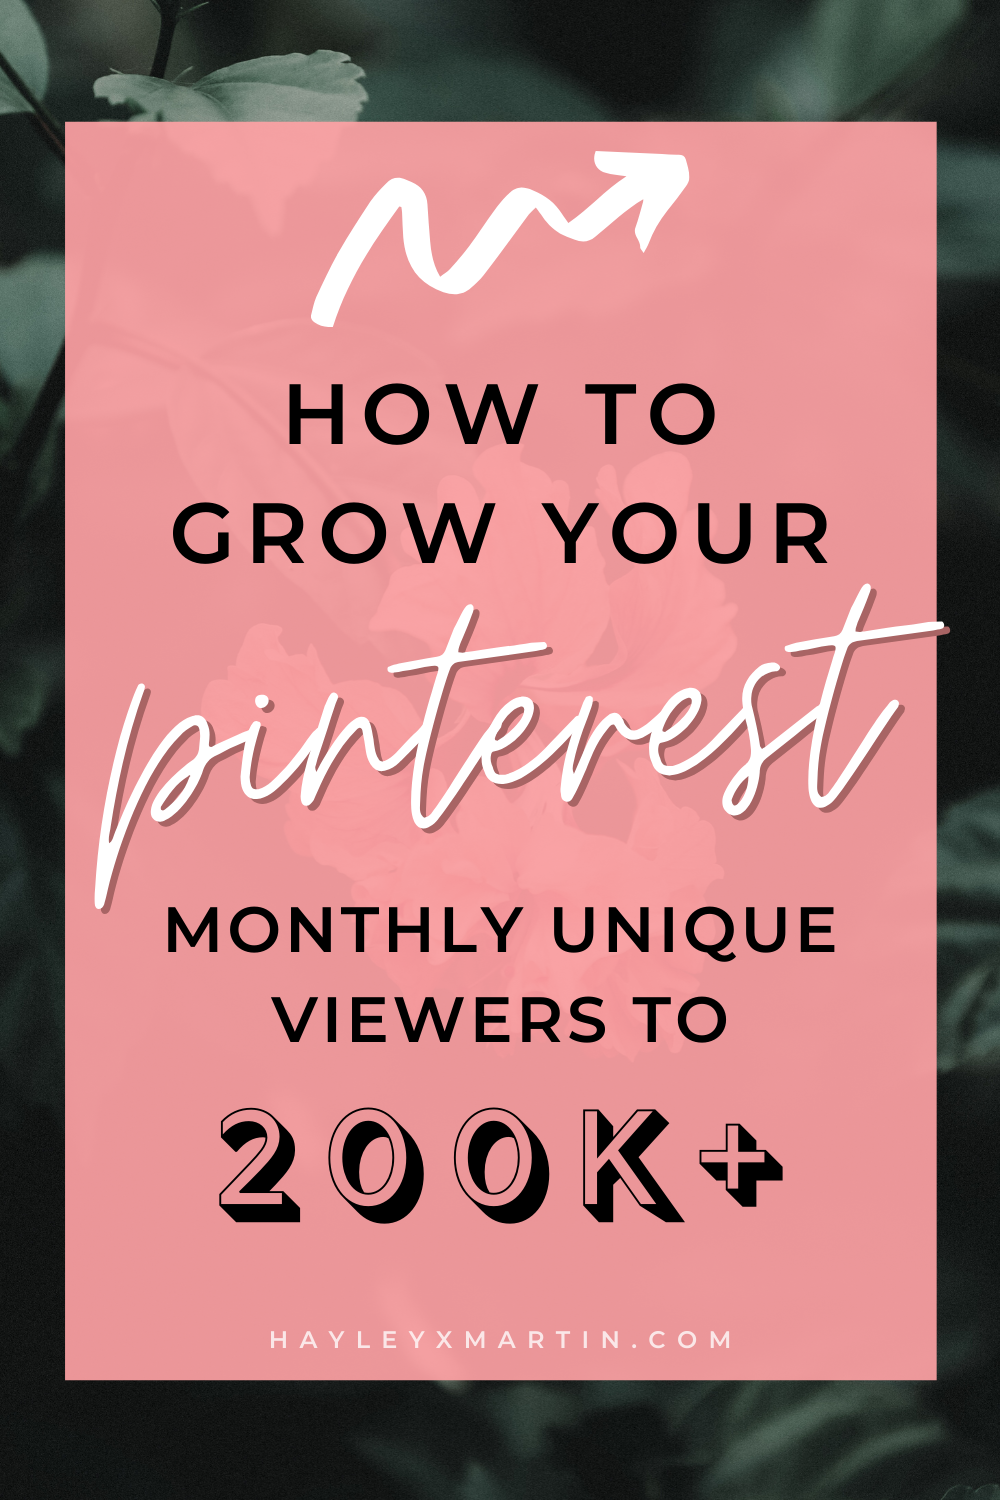 HOW TO GROW YOUR PINTEREST MONTHLY UNIQUE VIEWERS TO 200K+